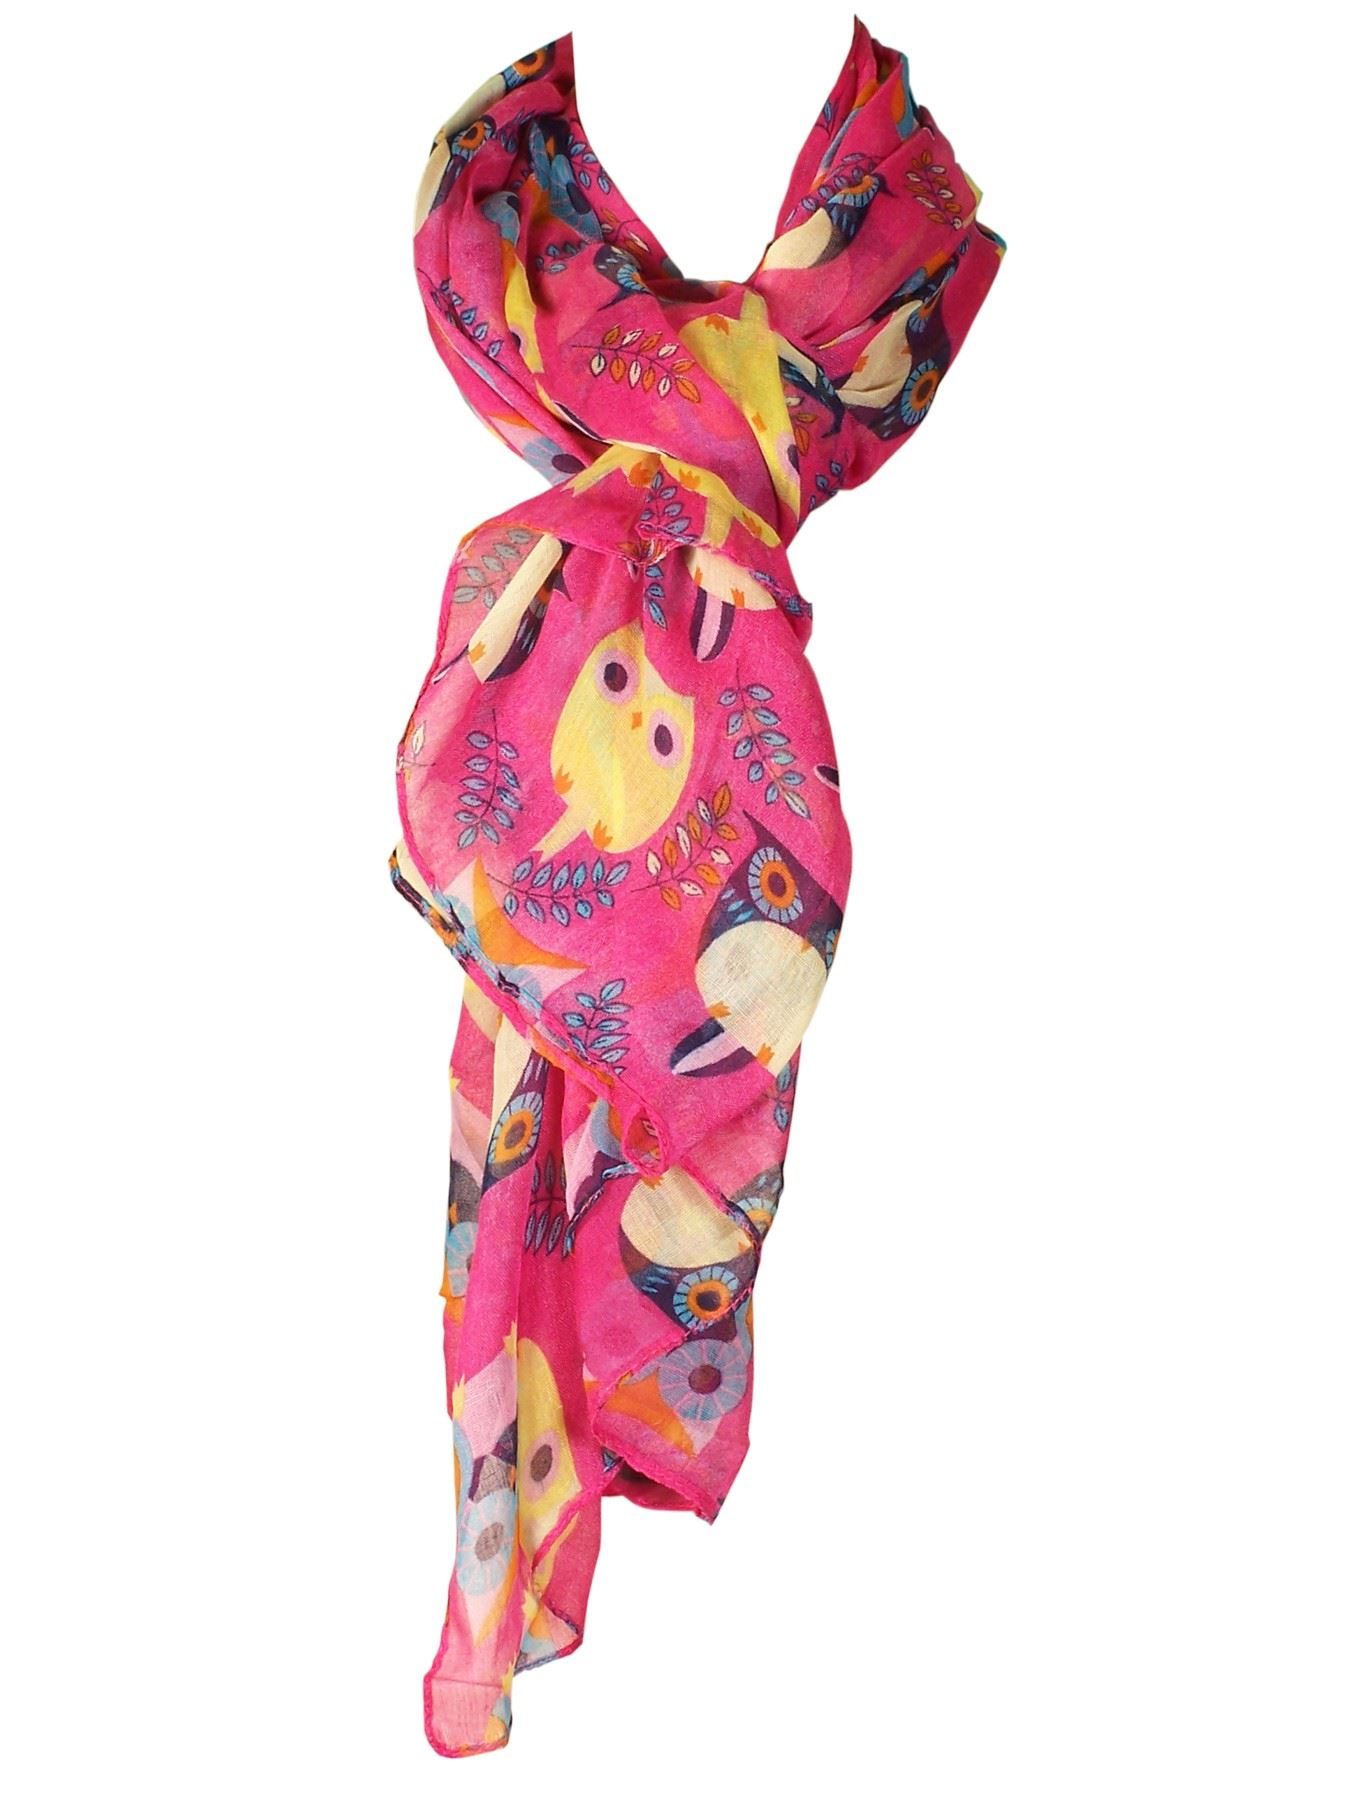 Scarf is a thriving social enterprise making a positive, practical difference to individuals and organisations. Find out how we can help you.